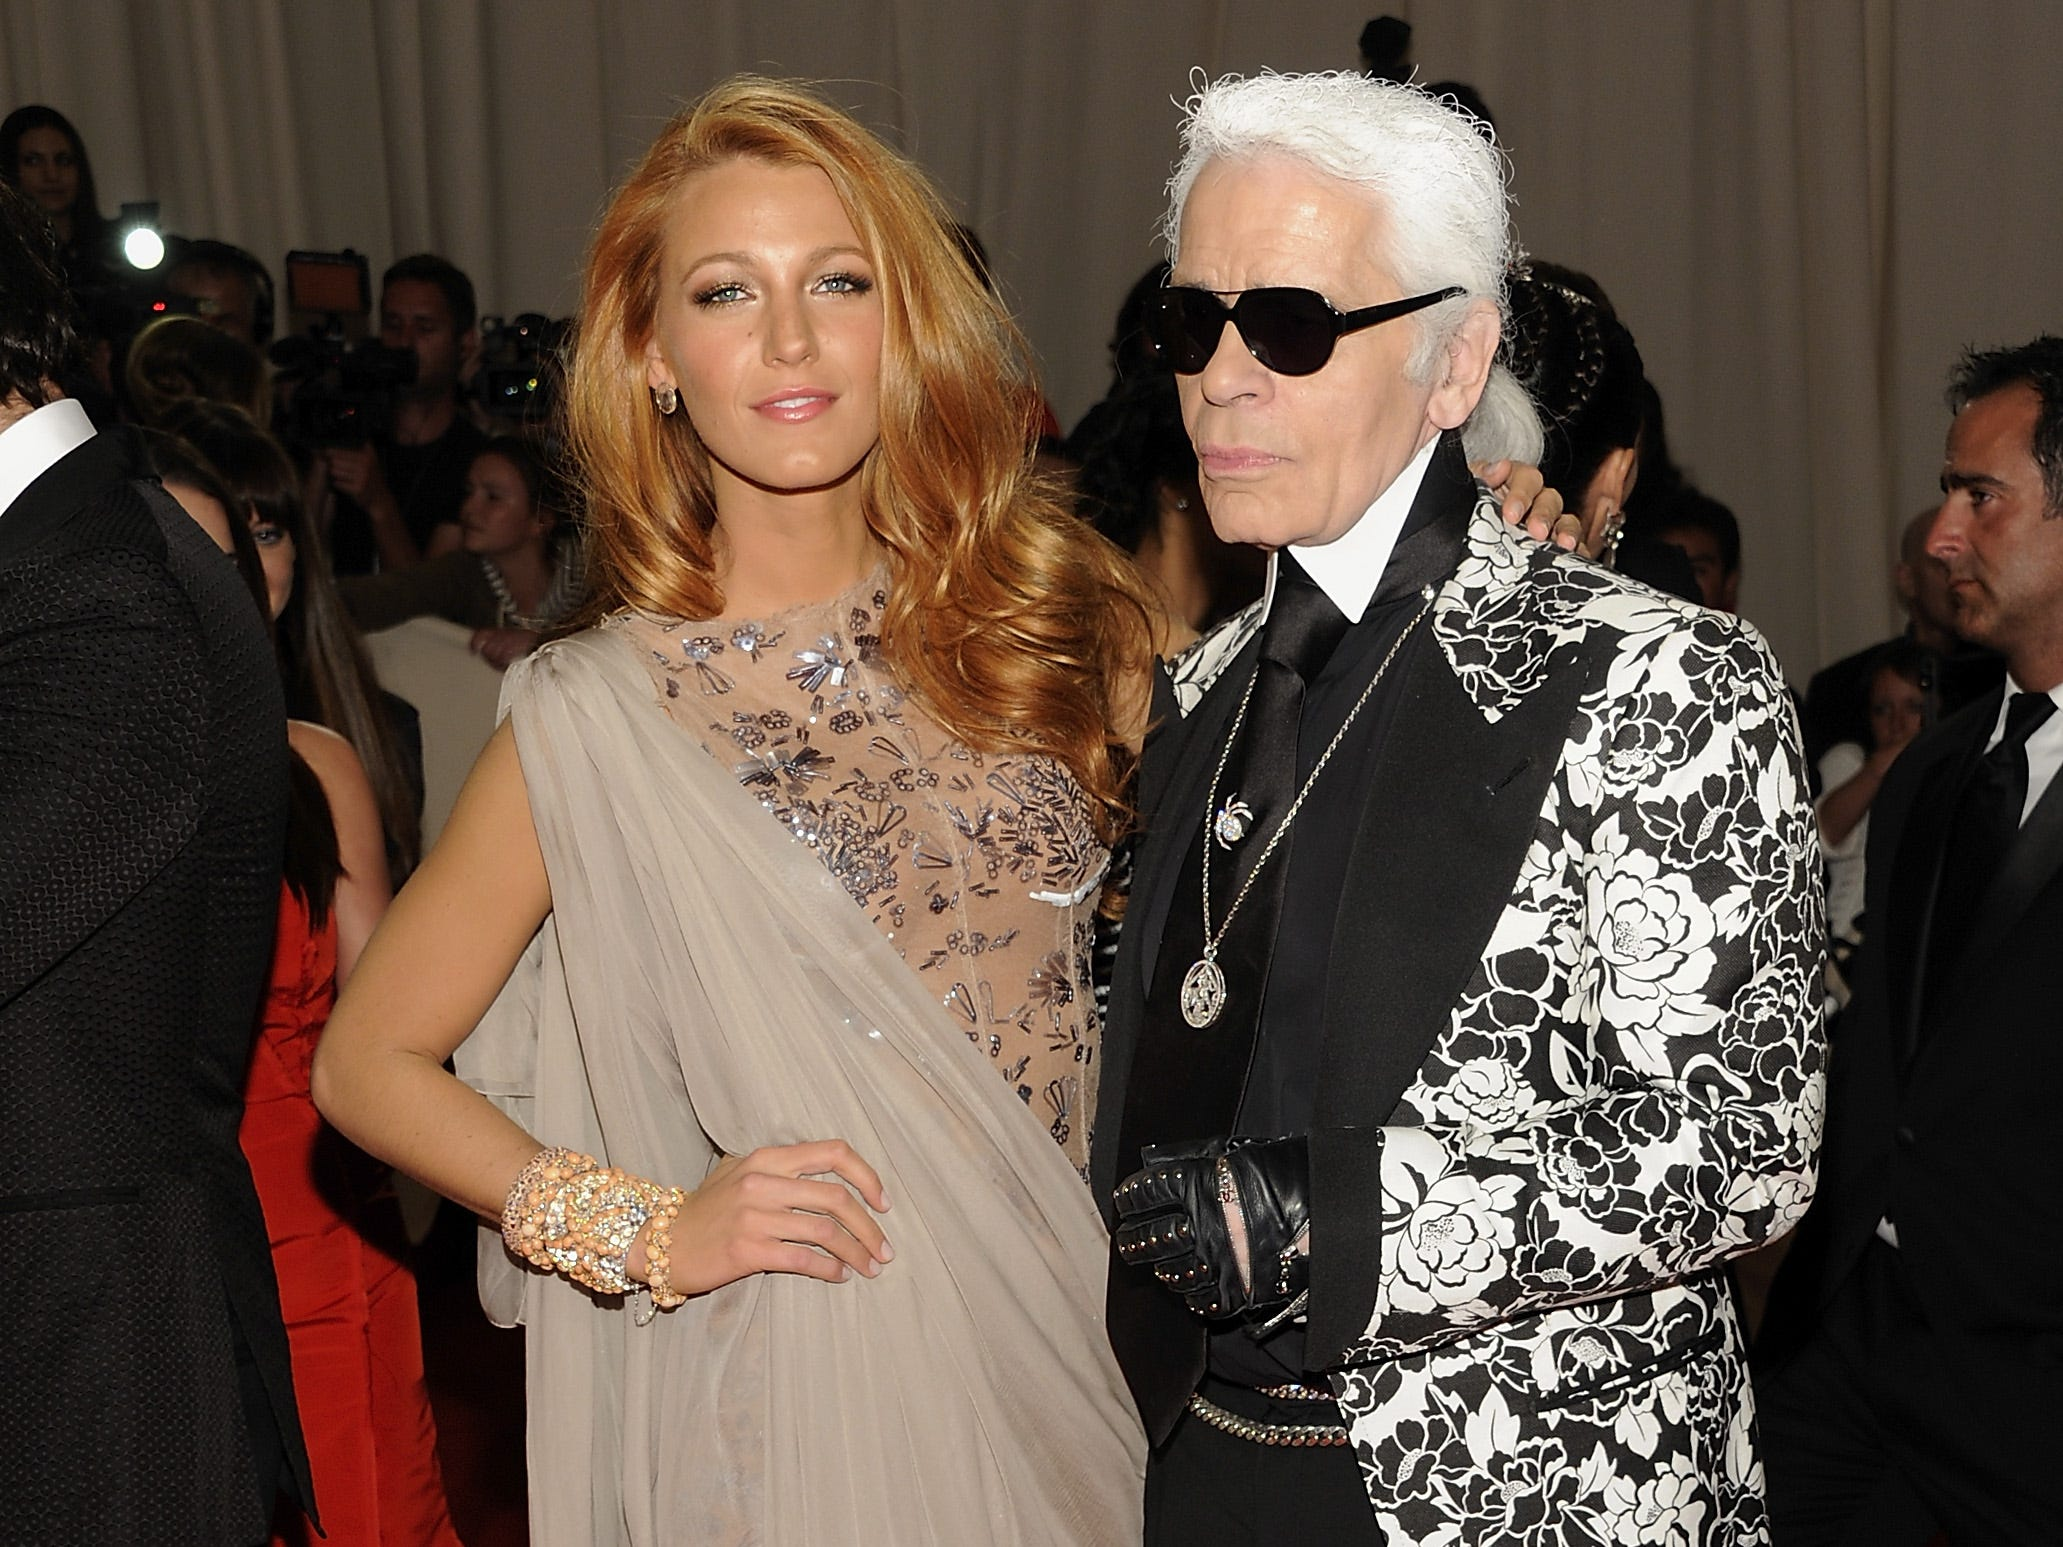 Blake Lively and Karl Lagerfeld arrive at the Metropolitan Museum of Art Costume Institute gala benefit, celebrating the 'Alexander McQueen: Savage Beauty' exhibition, May 2, 2011 in New York.